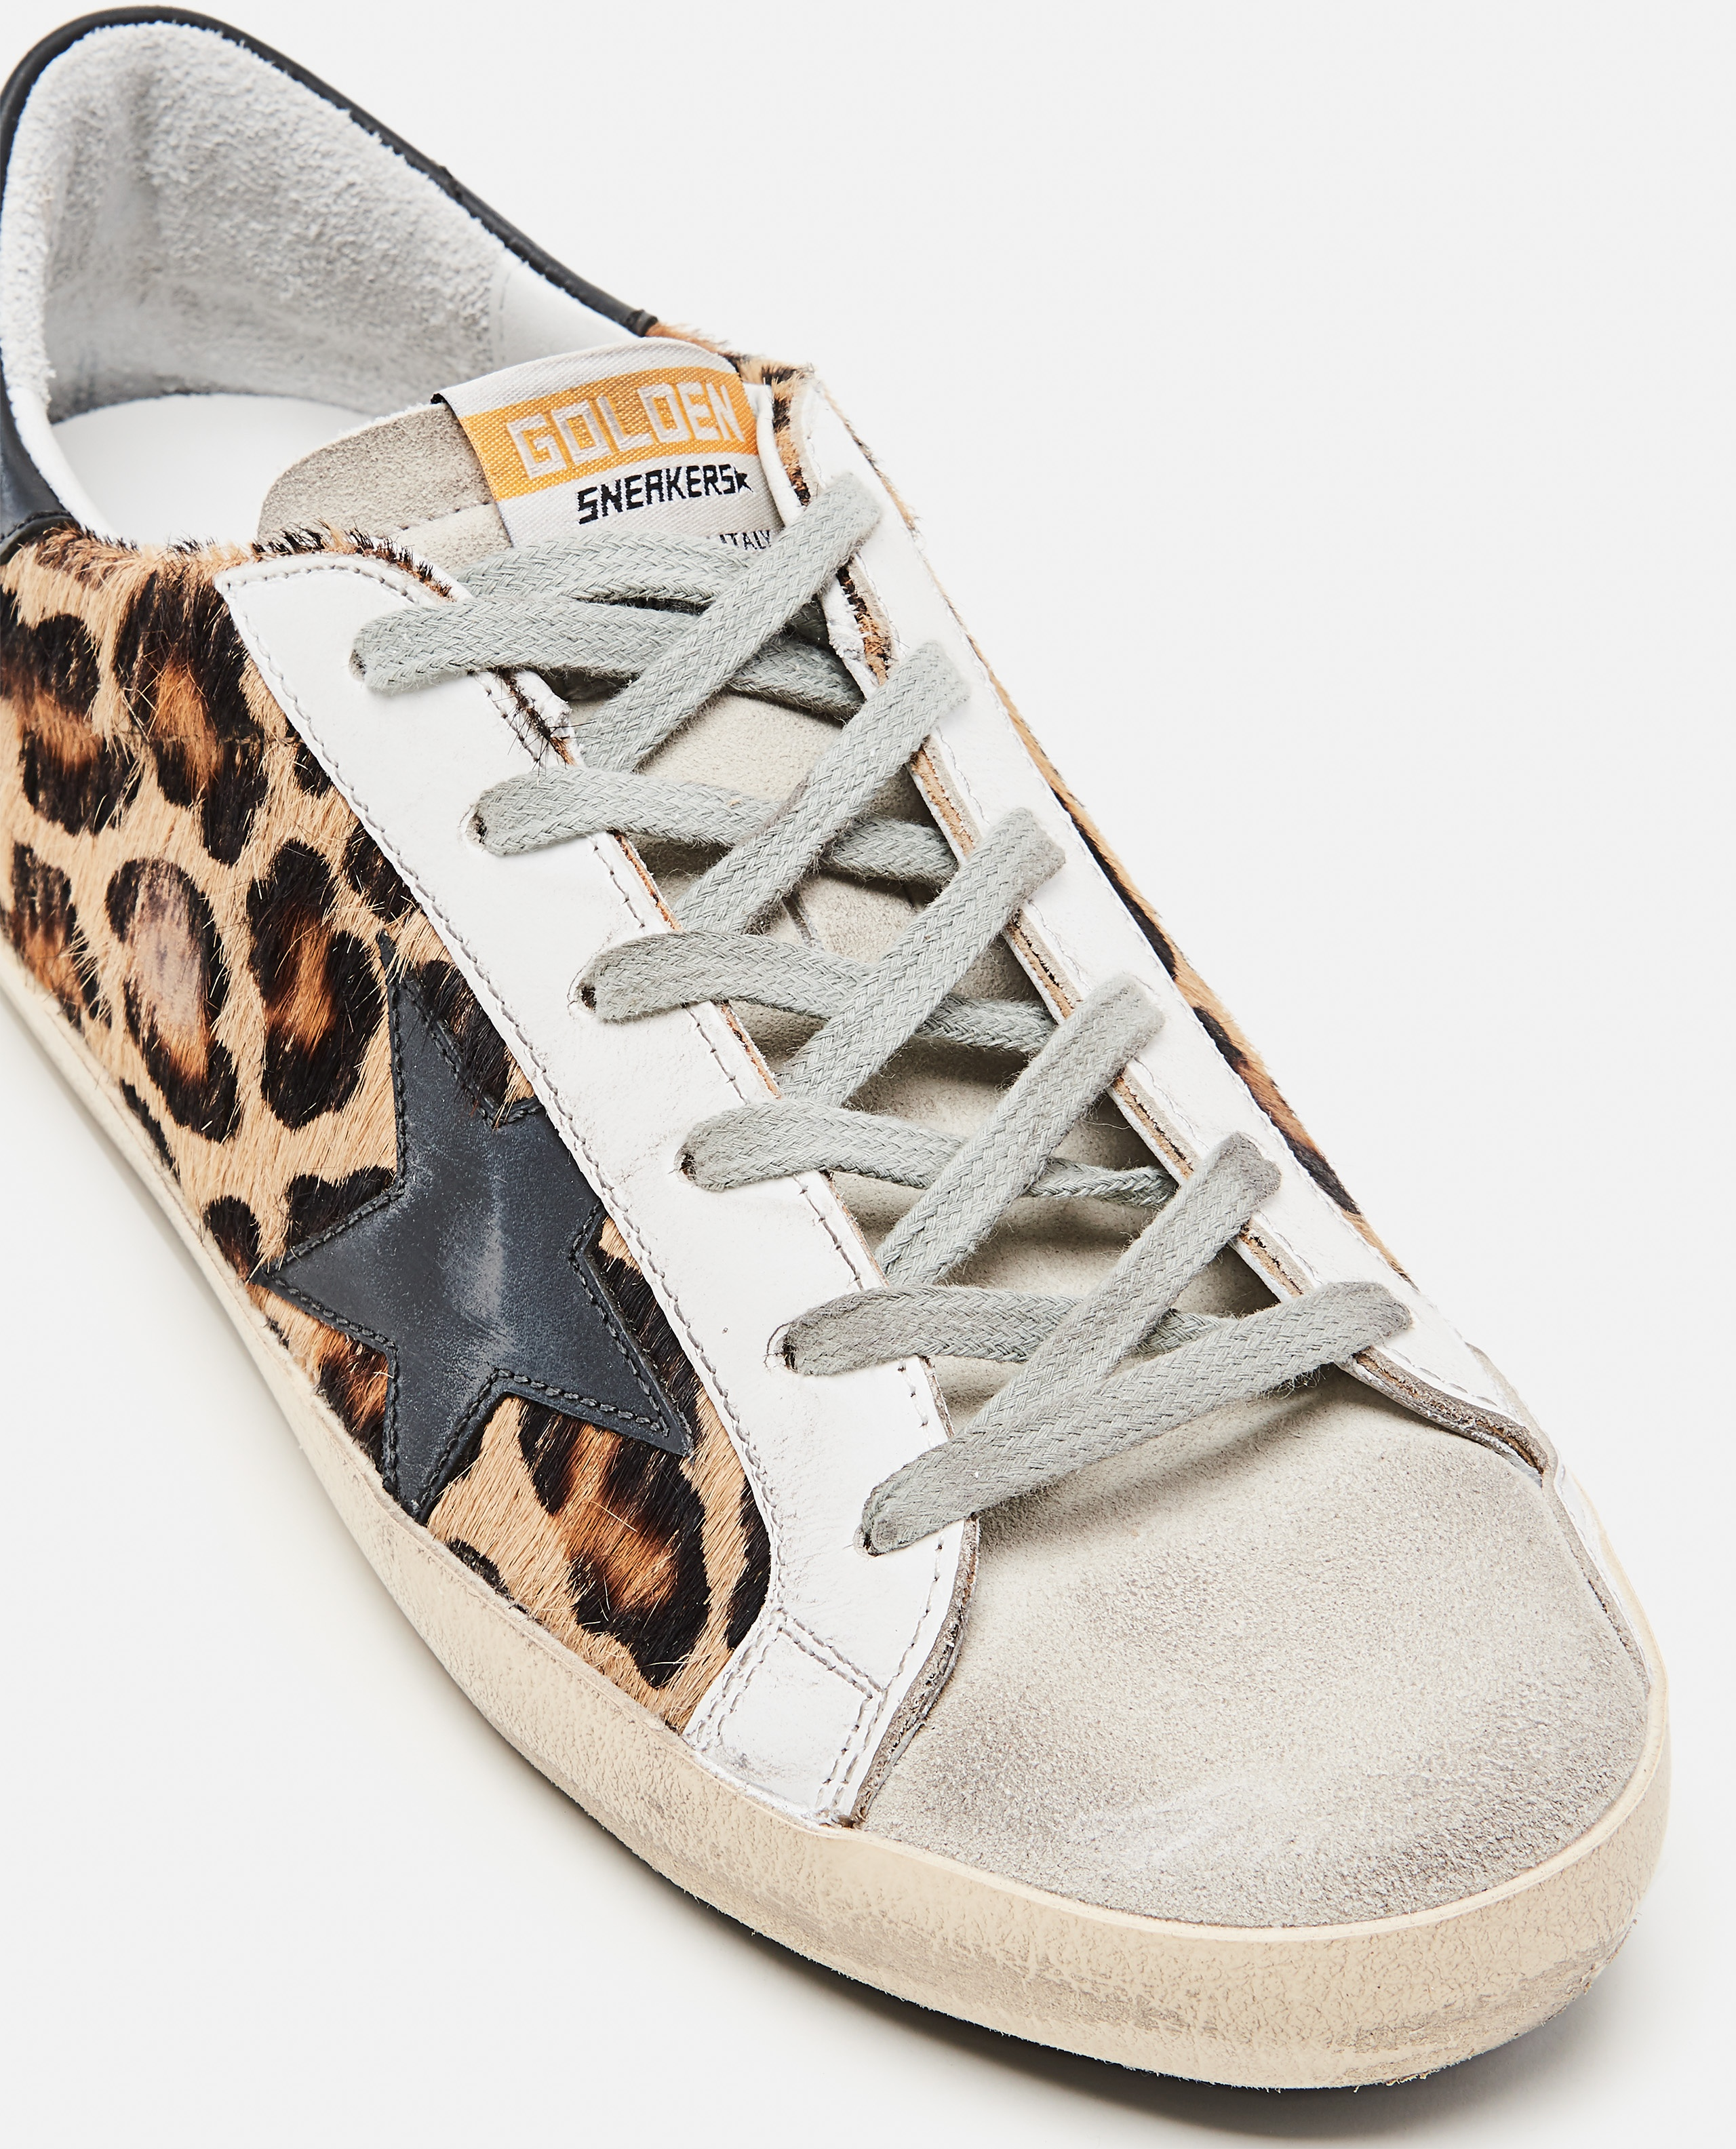 Superstar classic Golden Goose sneakers in spotted pony skin Donna Golden Goose 000286810042304 4